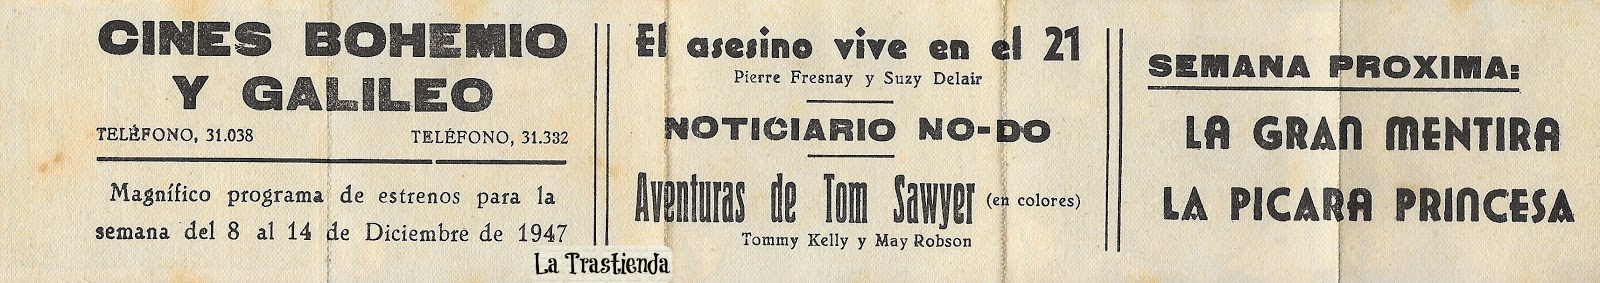 Programa de Cine - Aventuras de Tom Sawyer - Tommy Kelly - May Robson - Walter Brennan